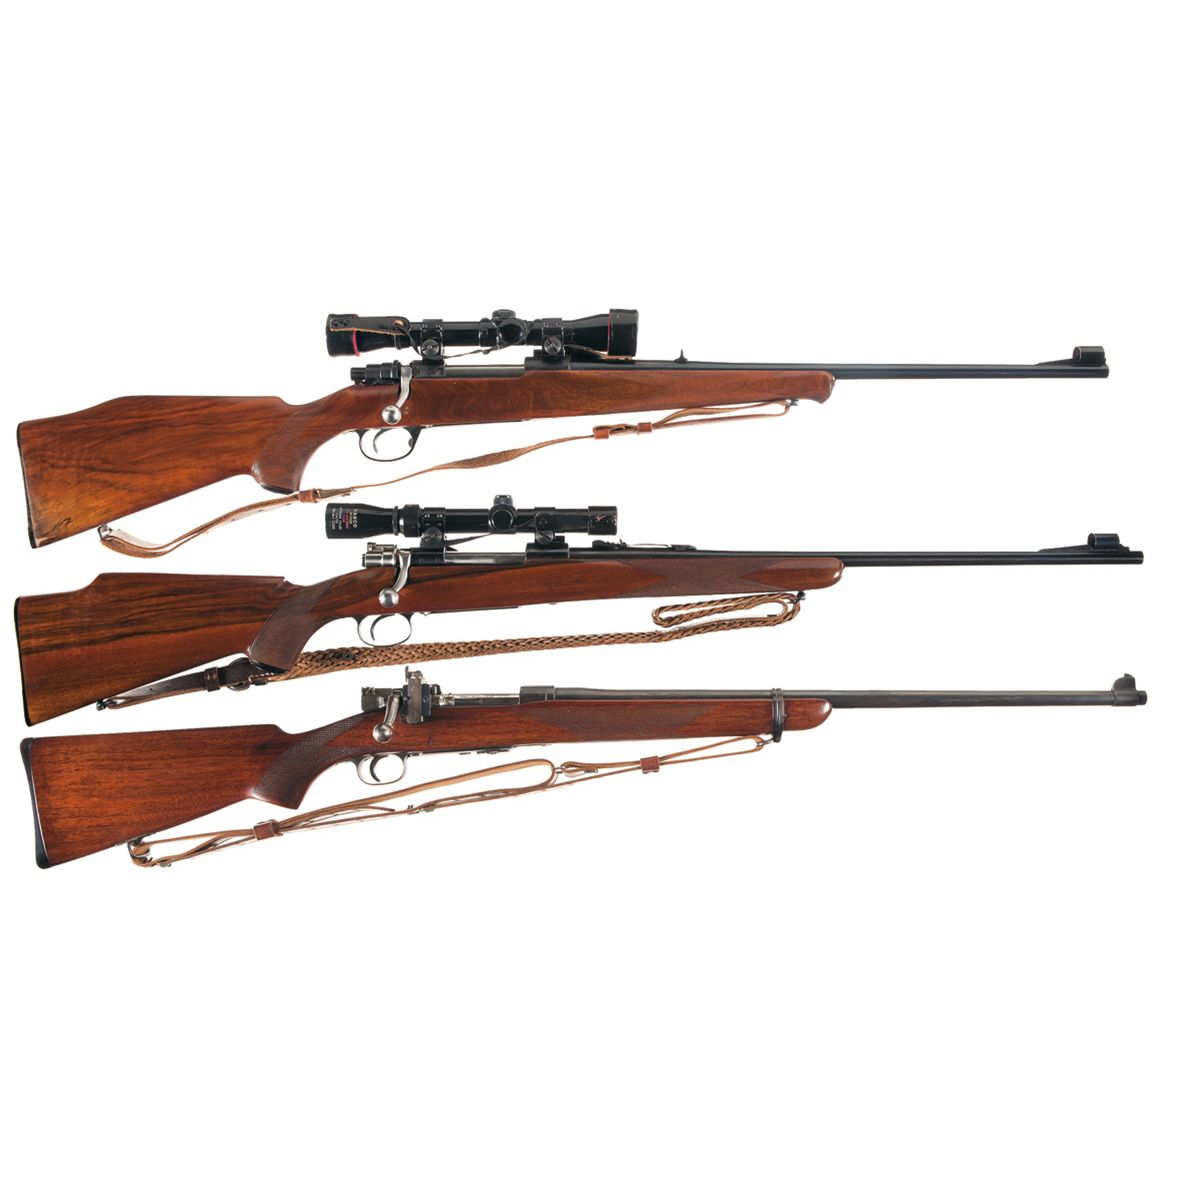 Husqvarna rifle serial number search